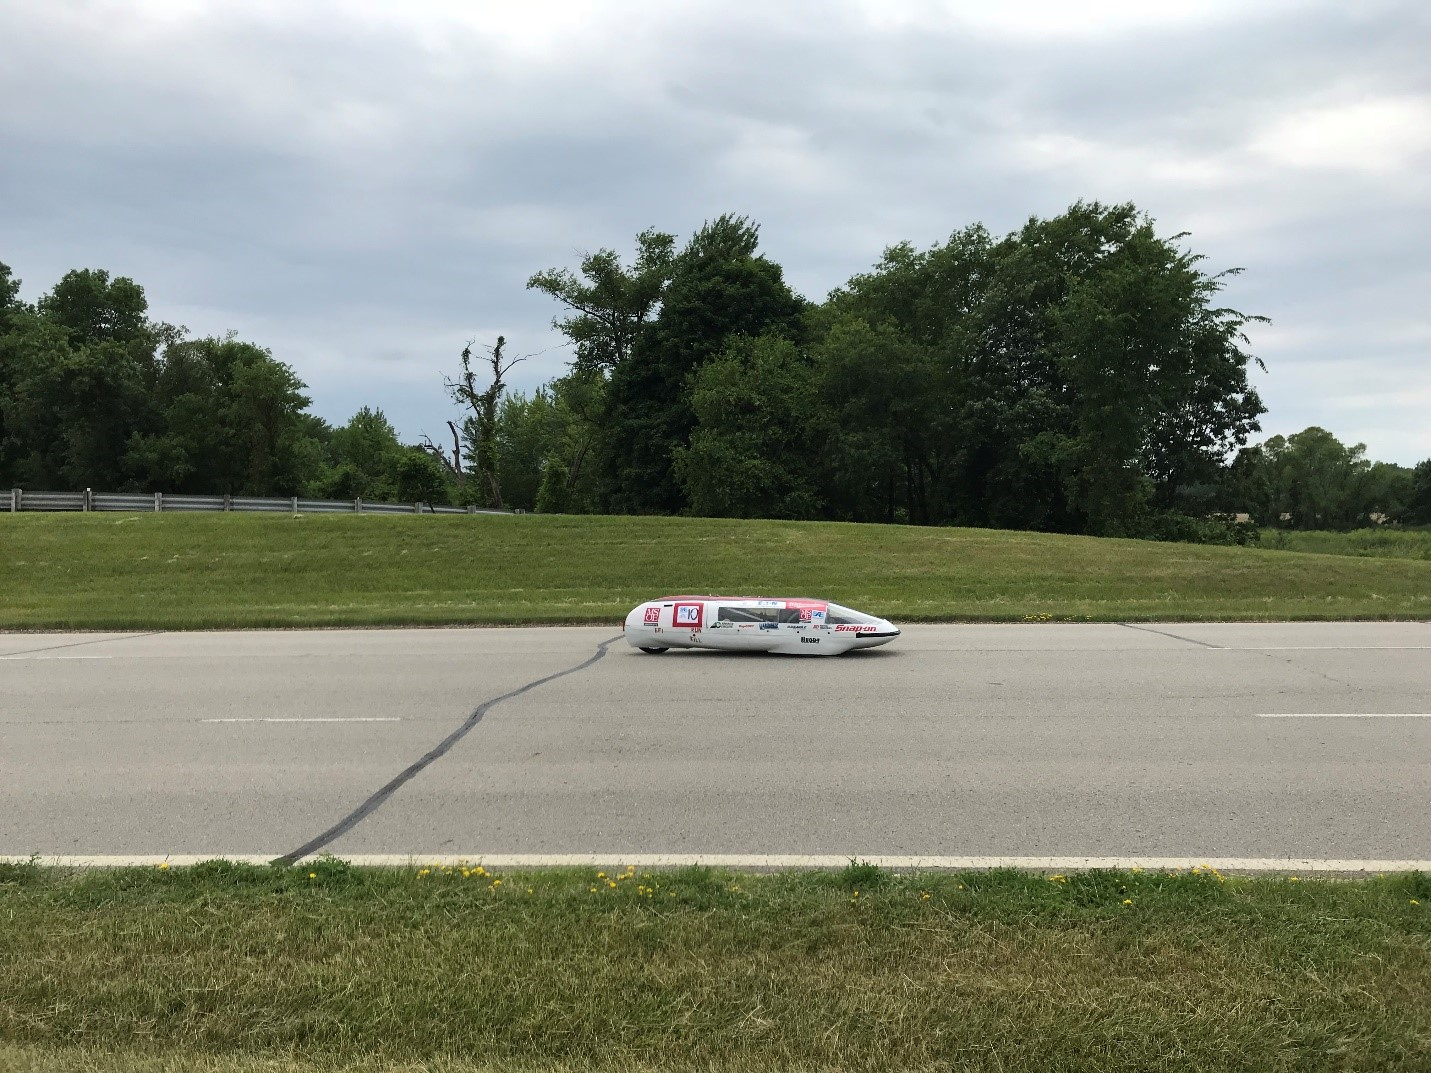 MSOE Supermileage vehicle on the track at the Eaton Proving Grounds